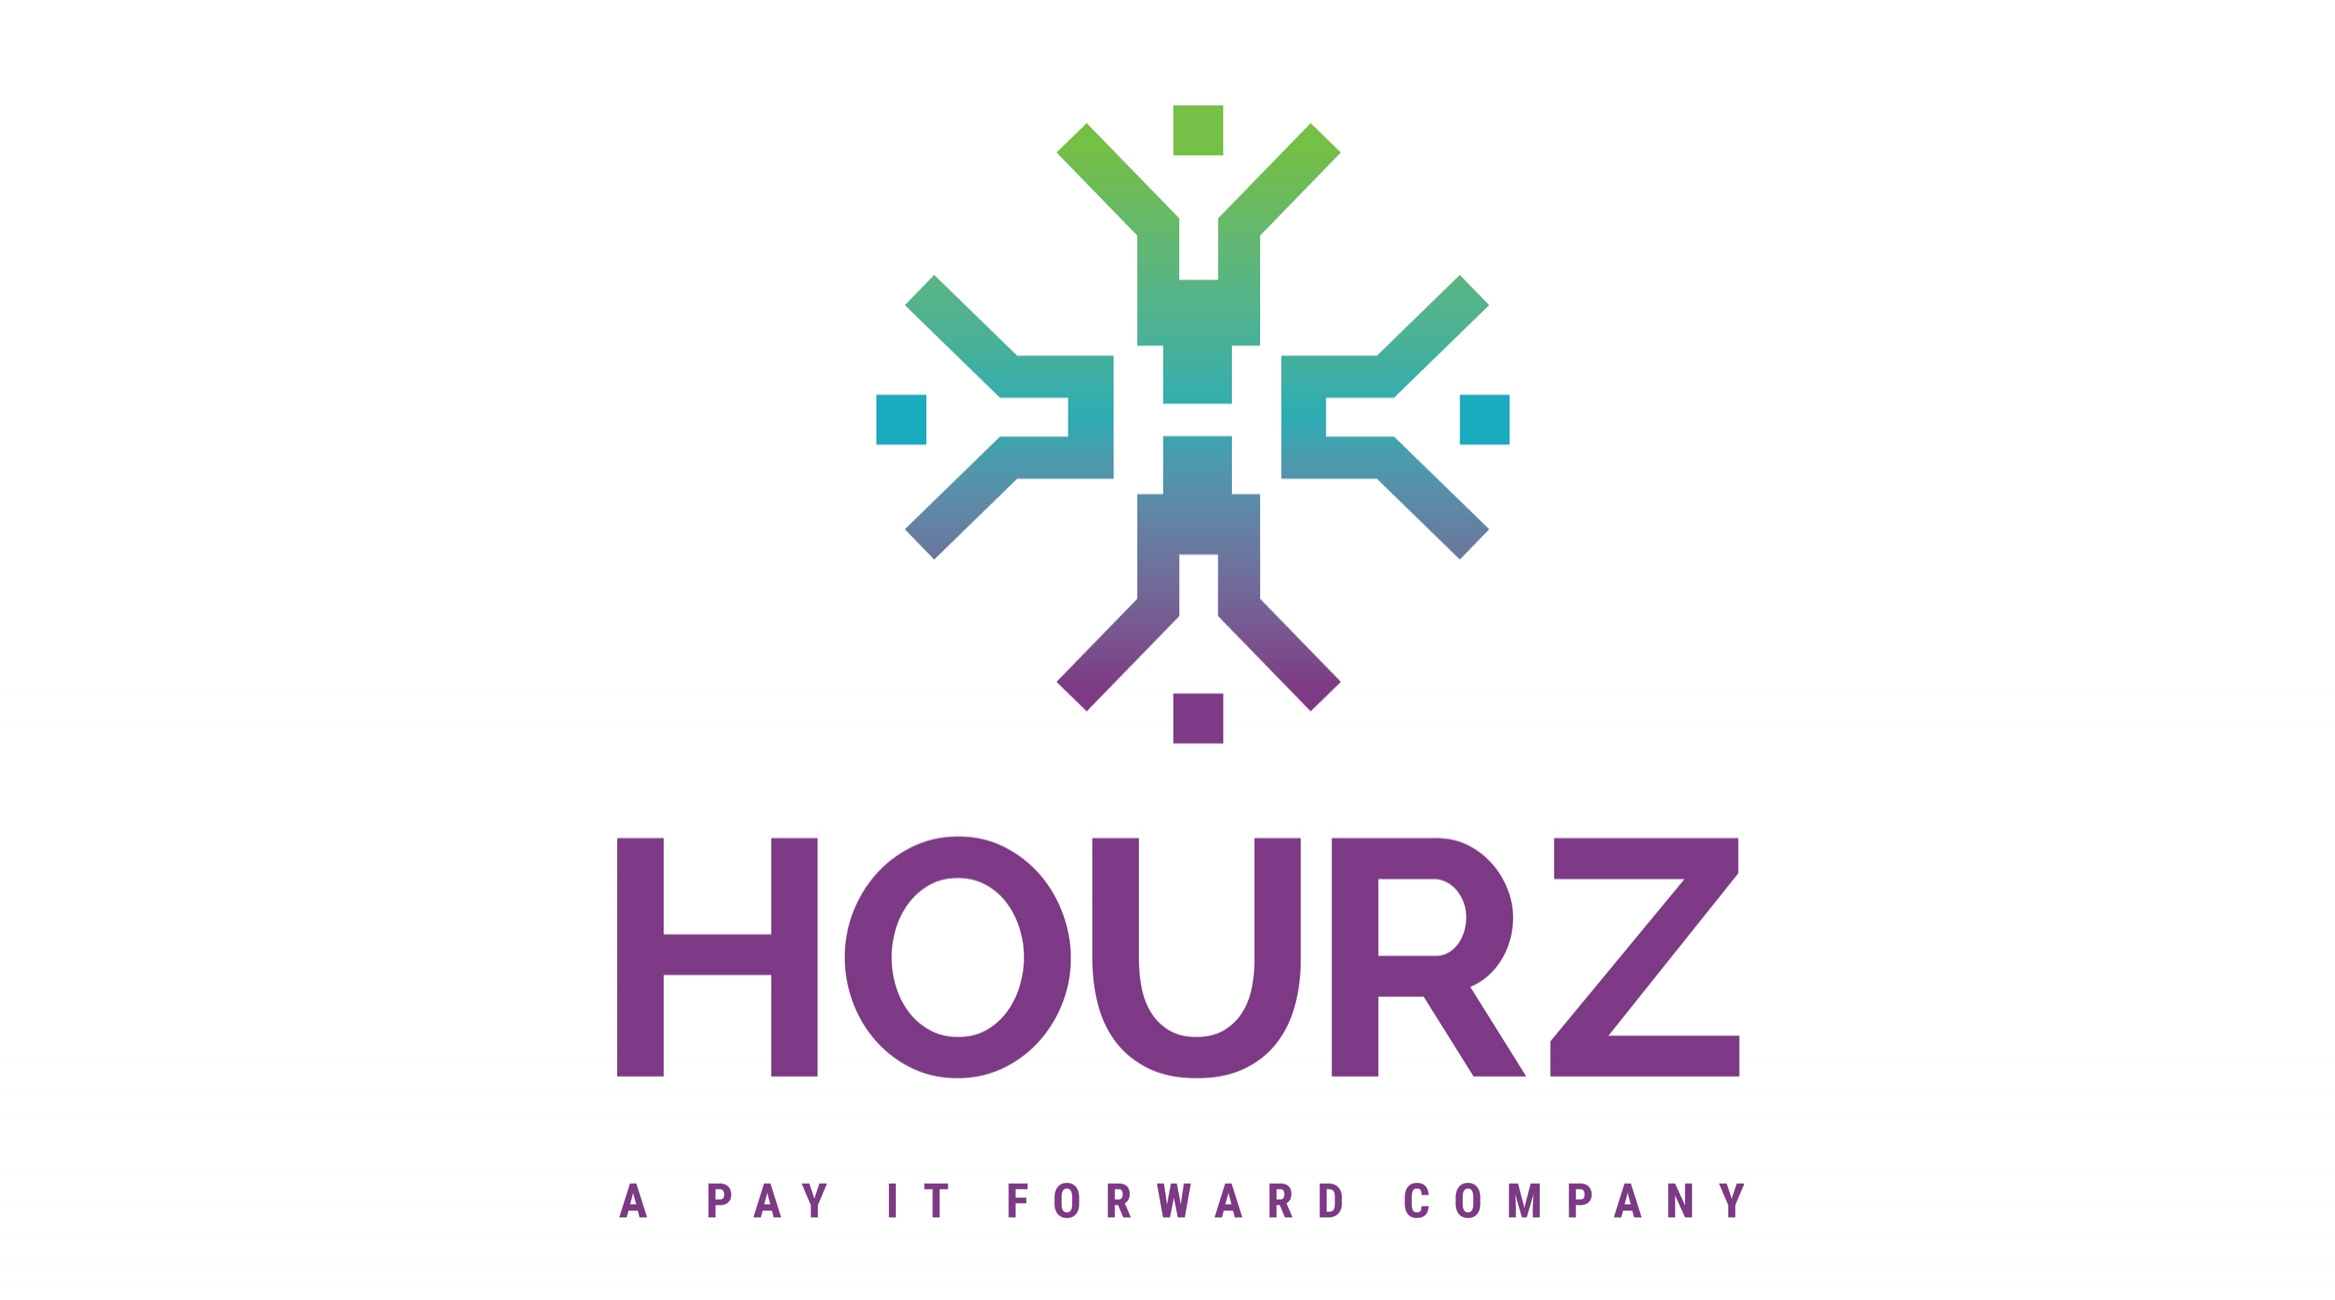 Pay It Forward - Every job you staff through HOURZ supports job training and work opportunities for at-risk young people. Learn more.